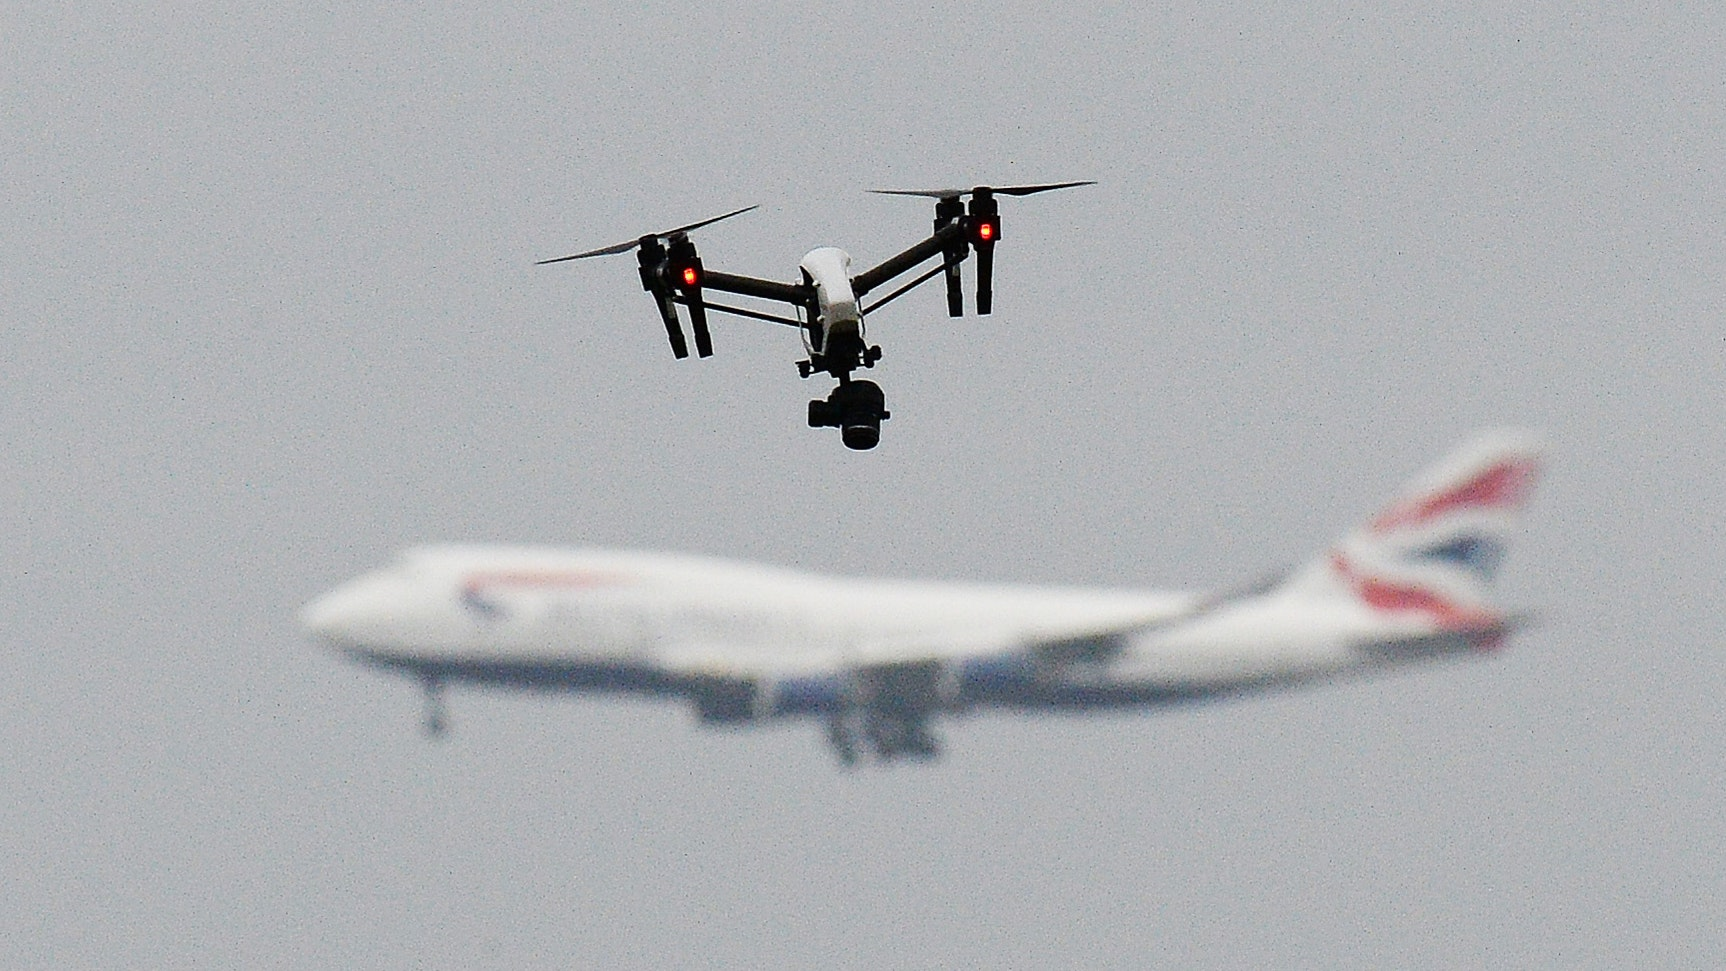 Heathrow flights halted after drone sighting